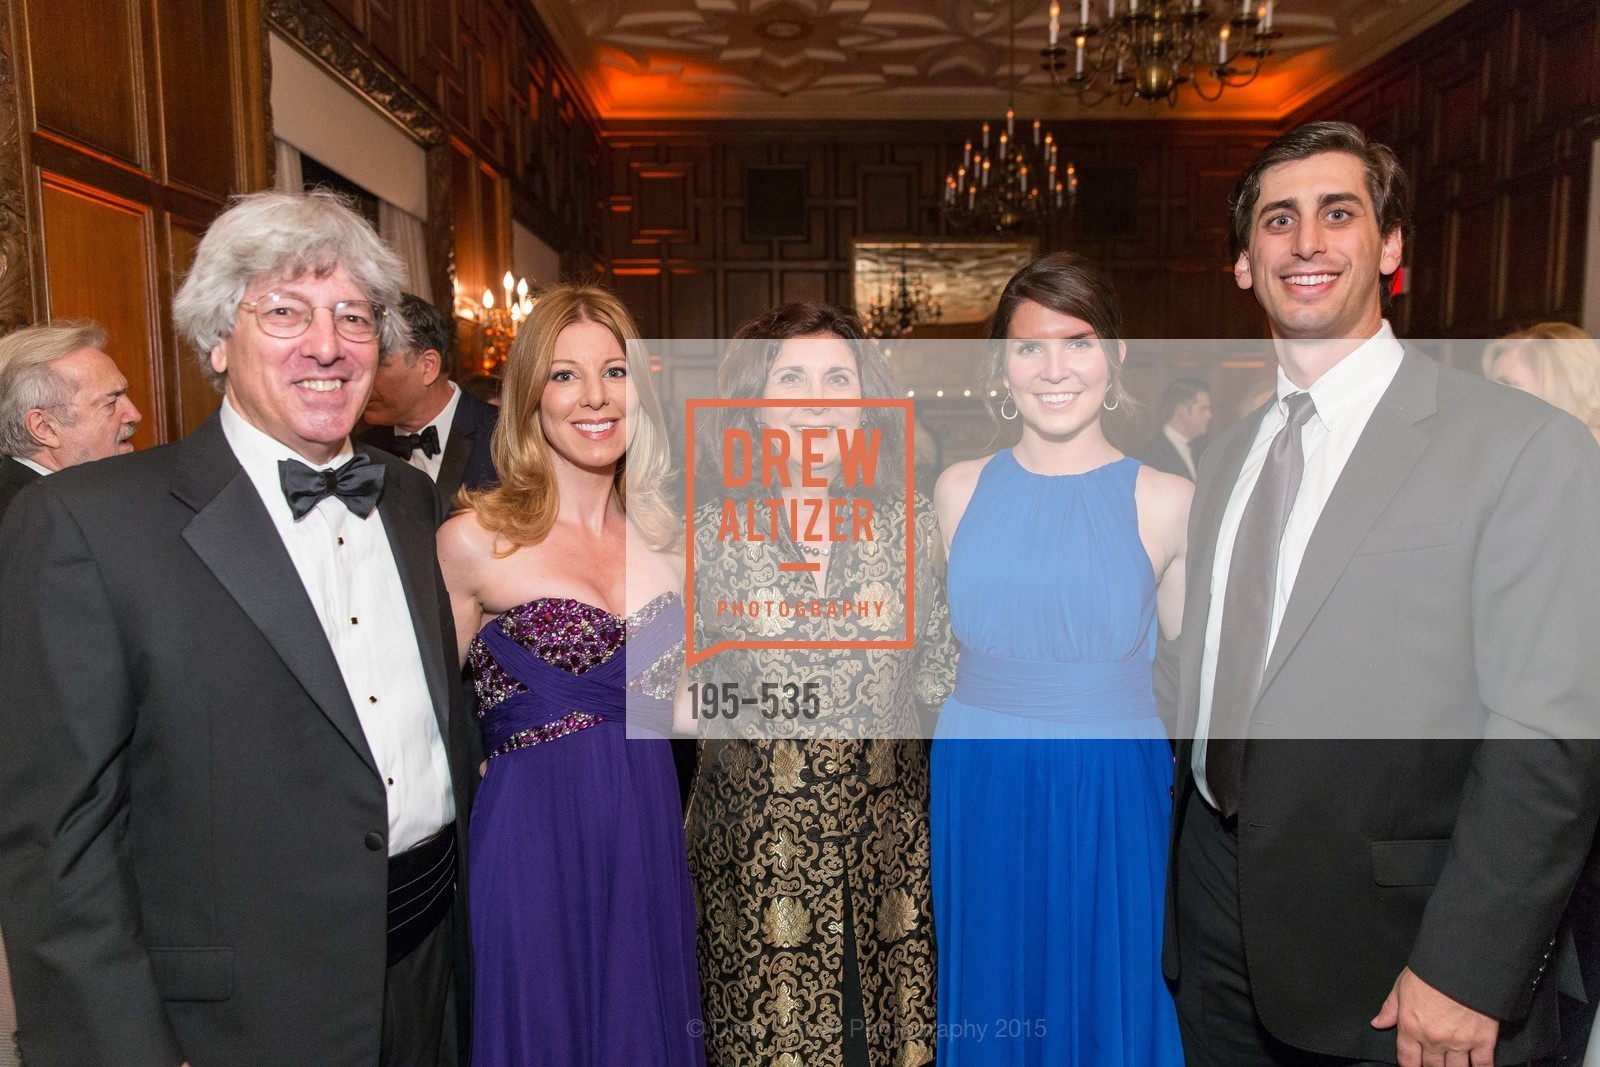 Byron Scordelis, Marisa Scordelis, Stephanie Scordelis, Mary Anderson, Stephen Scordelis, Hellenic Charity Ball, Westin St. Francis. 335 Powell Street, November 14th, 2015,Drew Altizer, Drew Altizer Photography, full-service event agency, private events, San Francisco photographer, photographer California